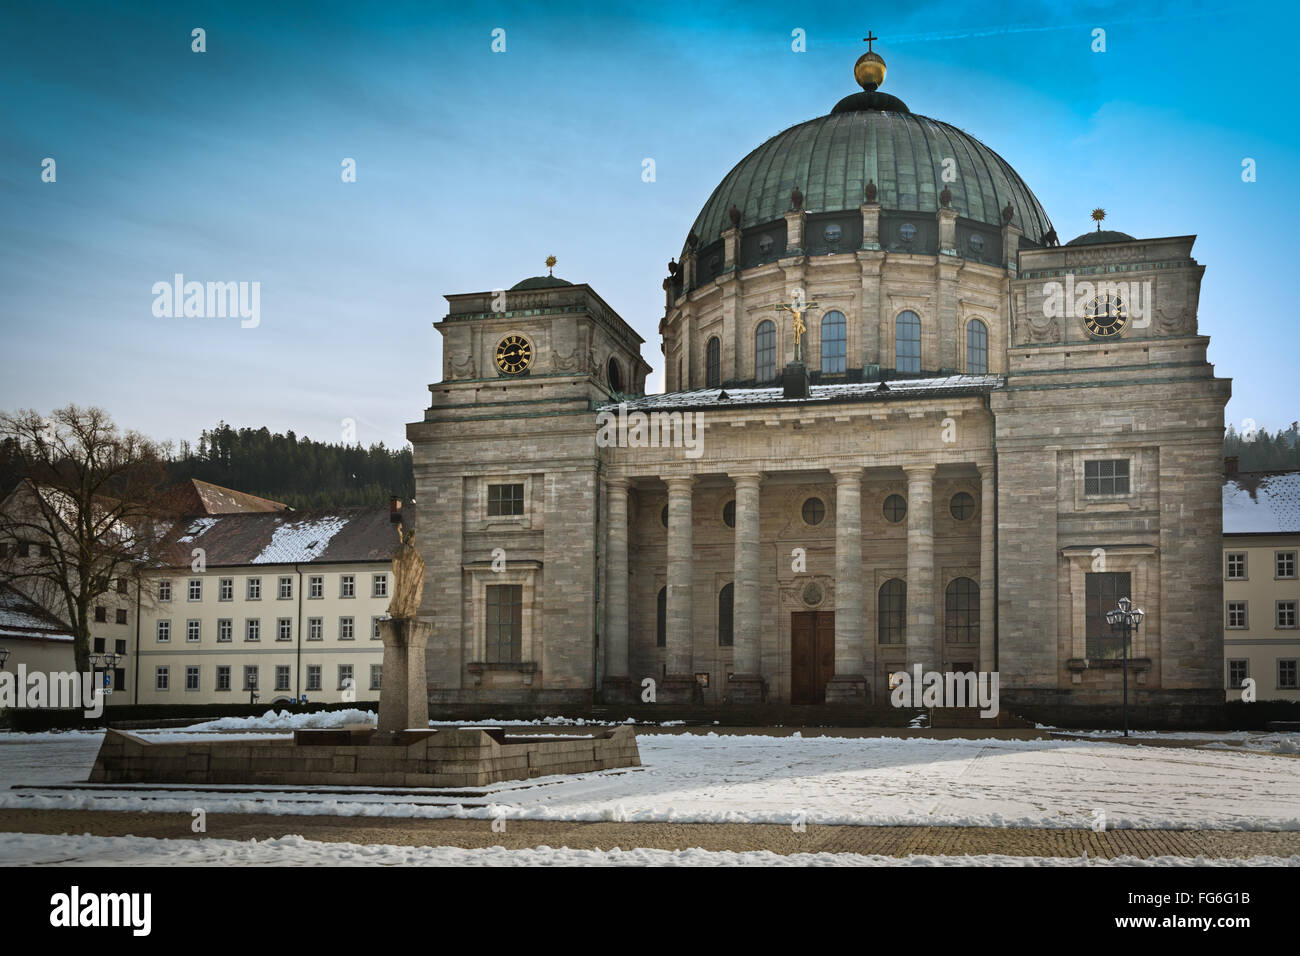 Abbey in Black Forest, St. Blasien, Germany Stock Photo